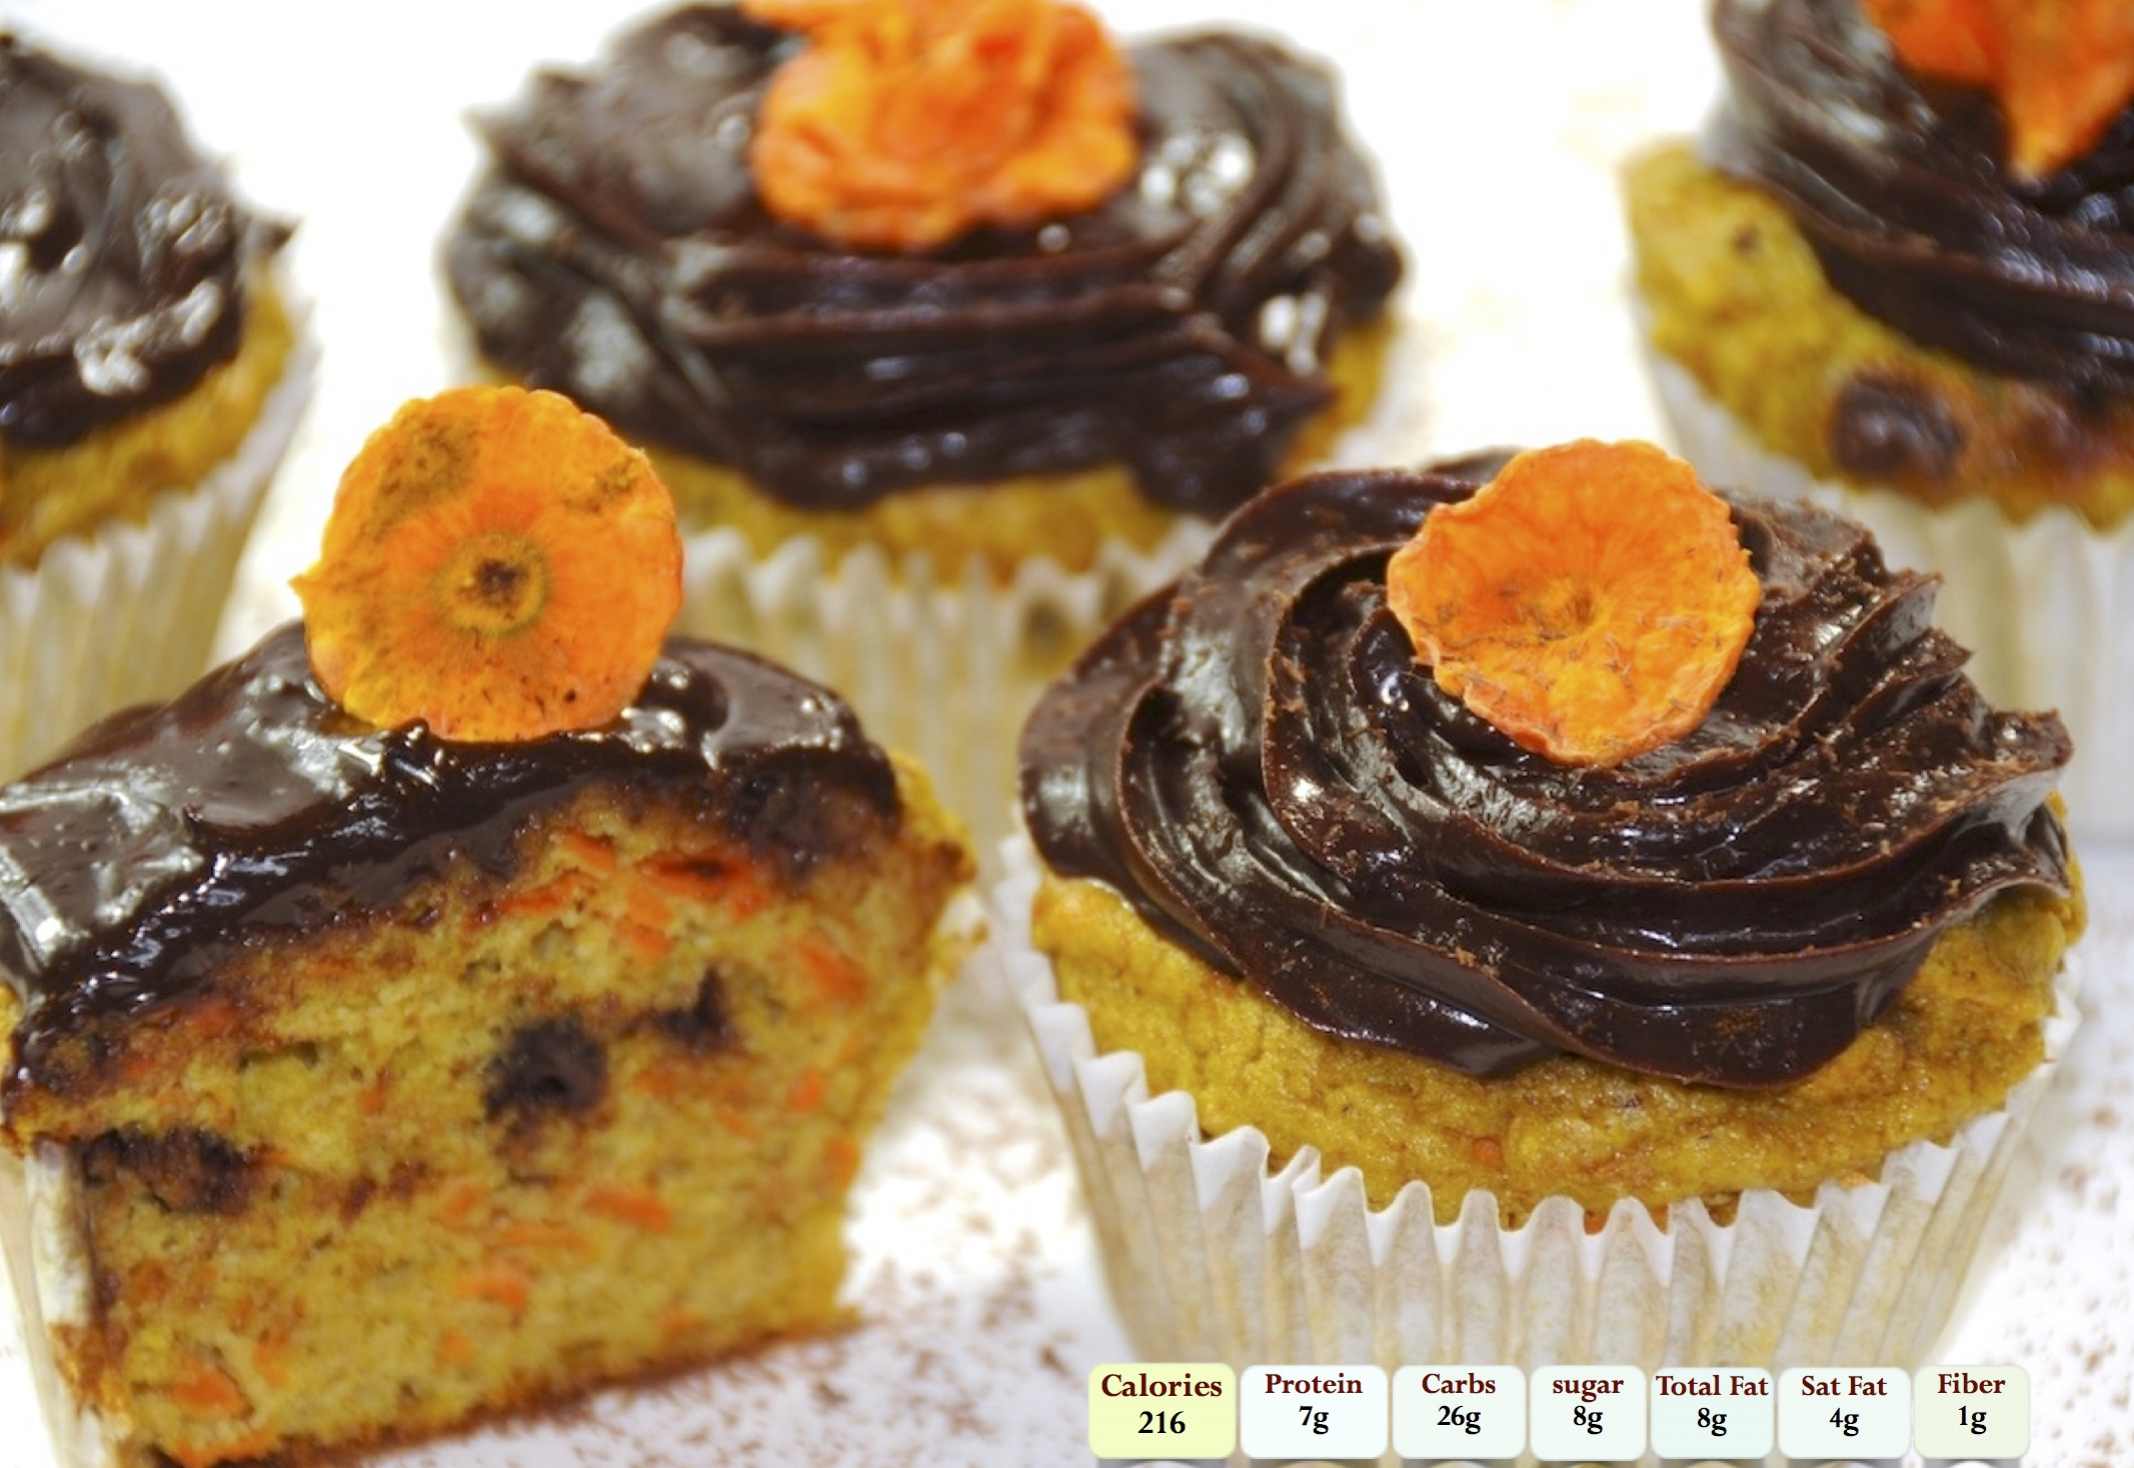 Carrot Cup Cake With Chocolate Cream Cheese Frosting.jpg